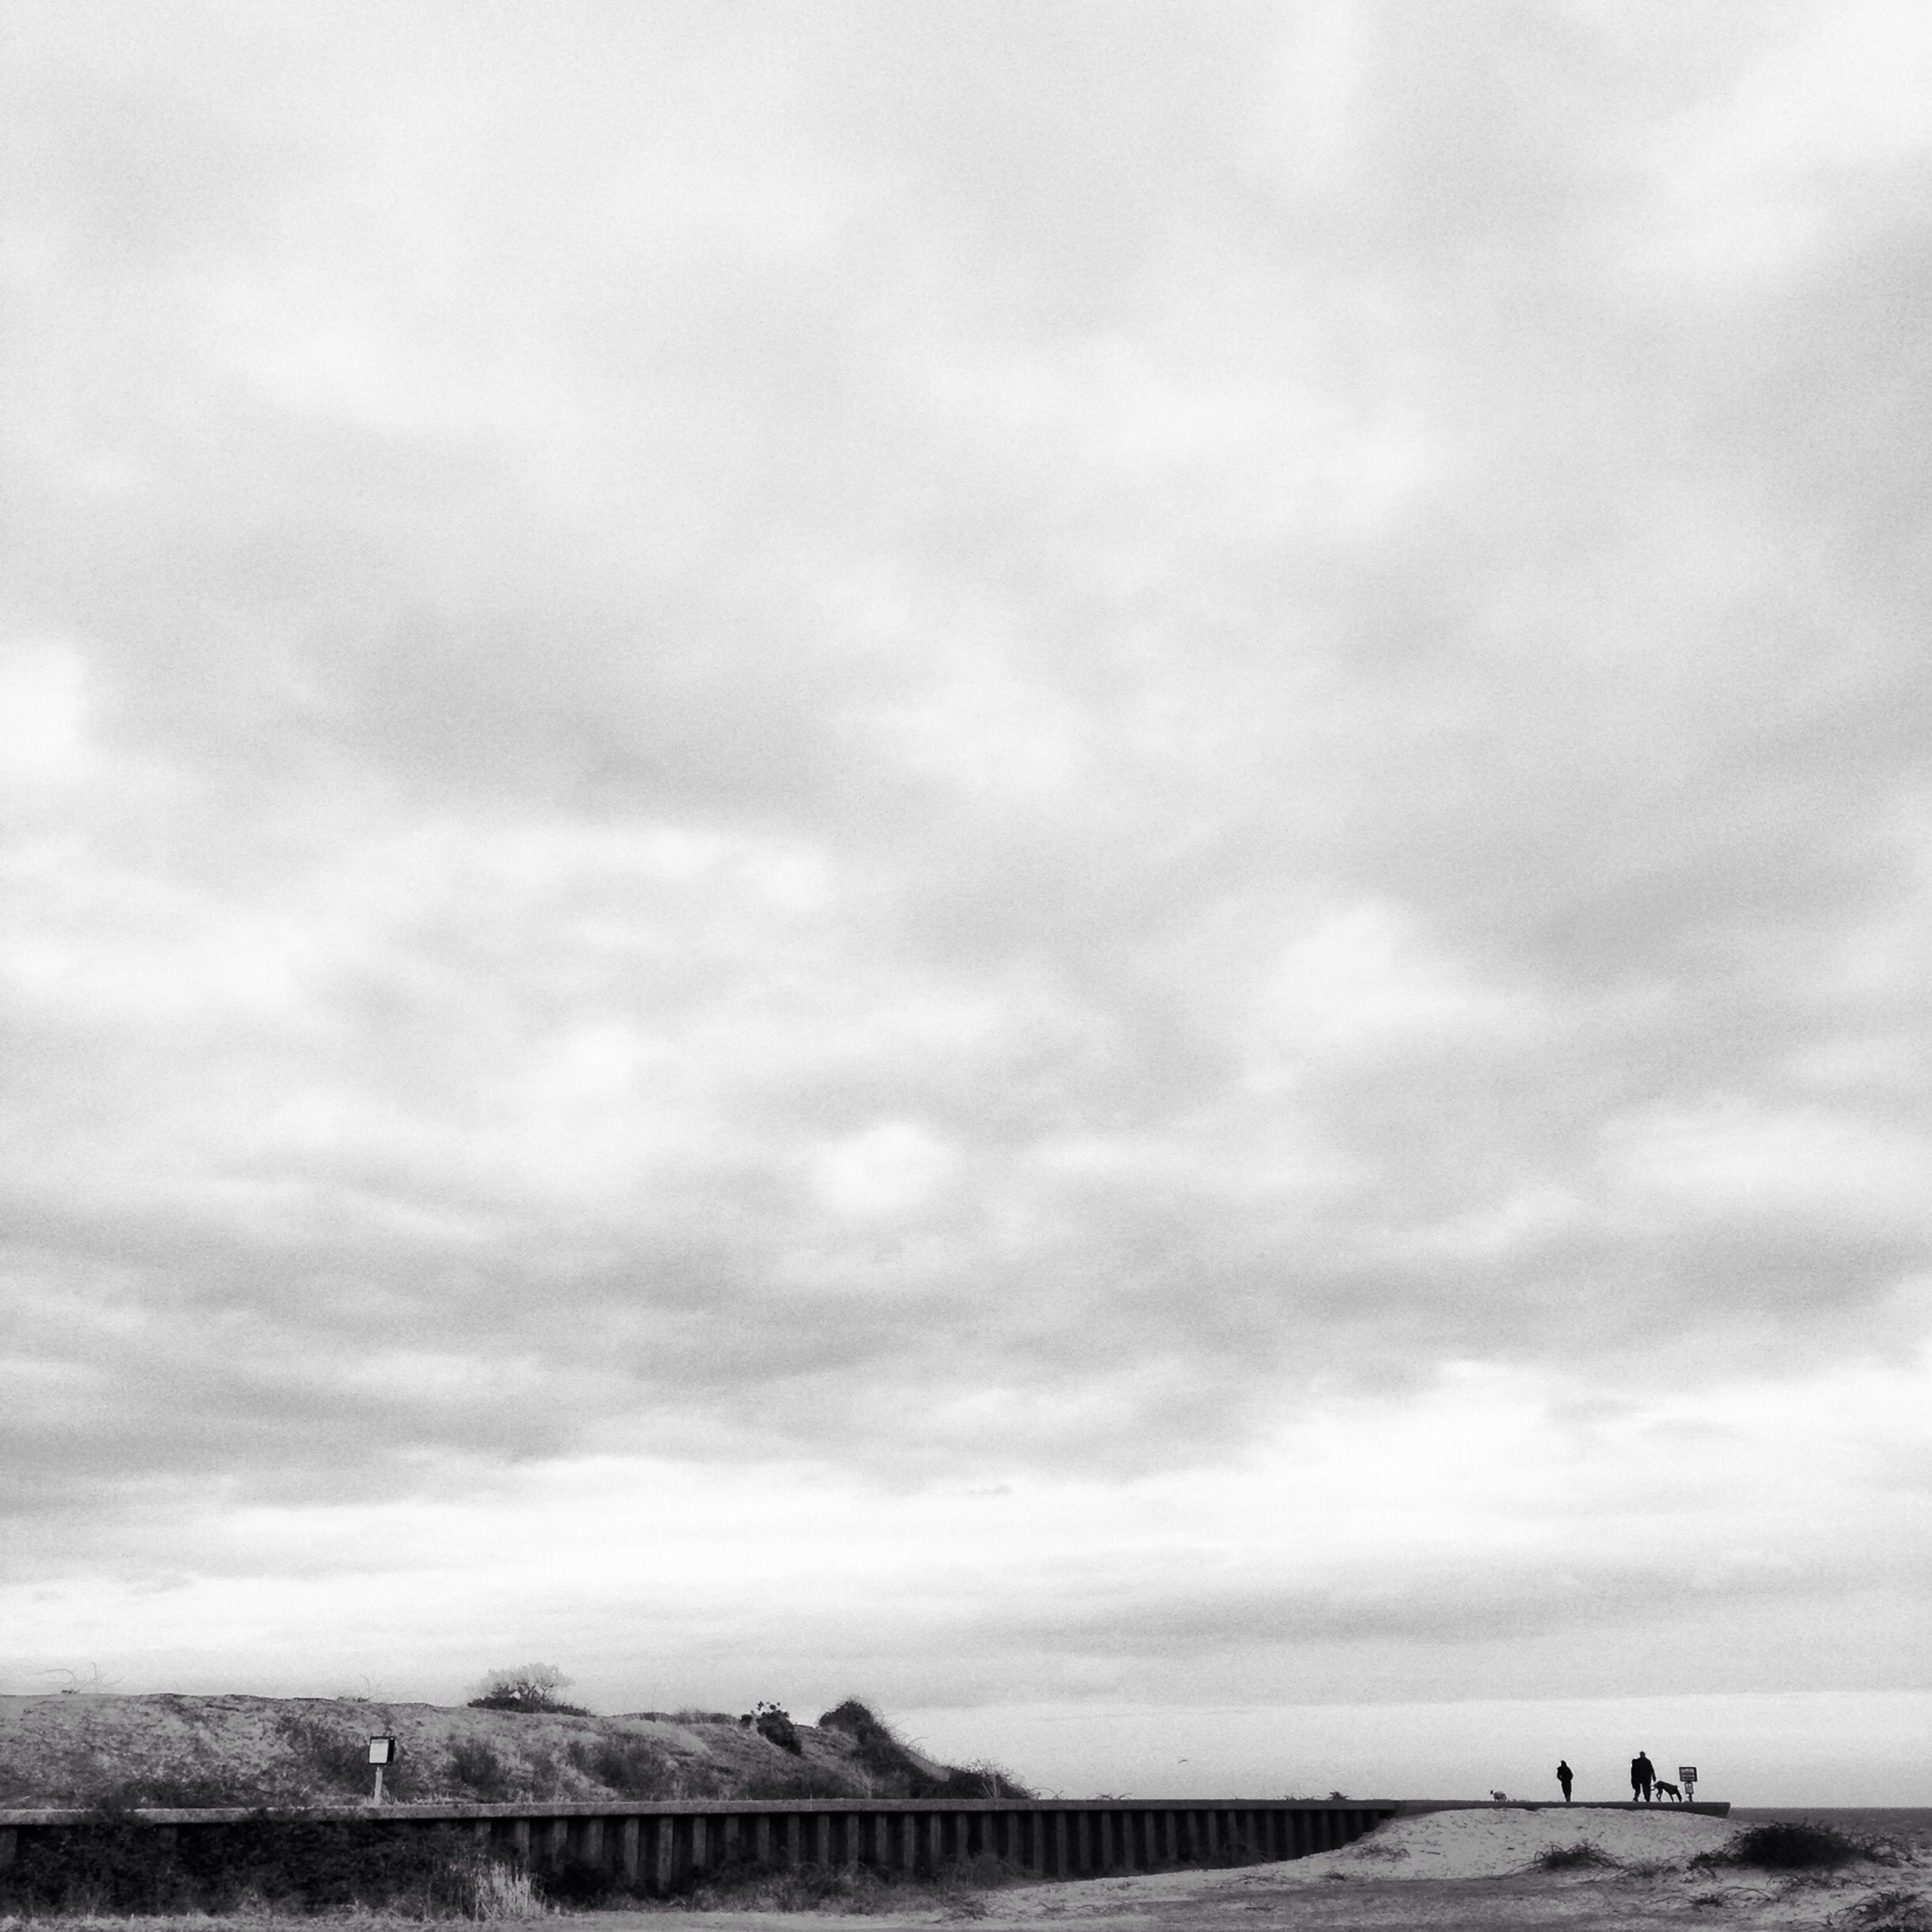 sky, sea, cloud - sky, water, cloudy, beach, horizon over water, built structure, architecture, shore, incidental people, cloud, nature, day, overcast, transportation, building exterior, outdoors, scenics